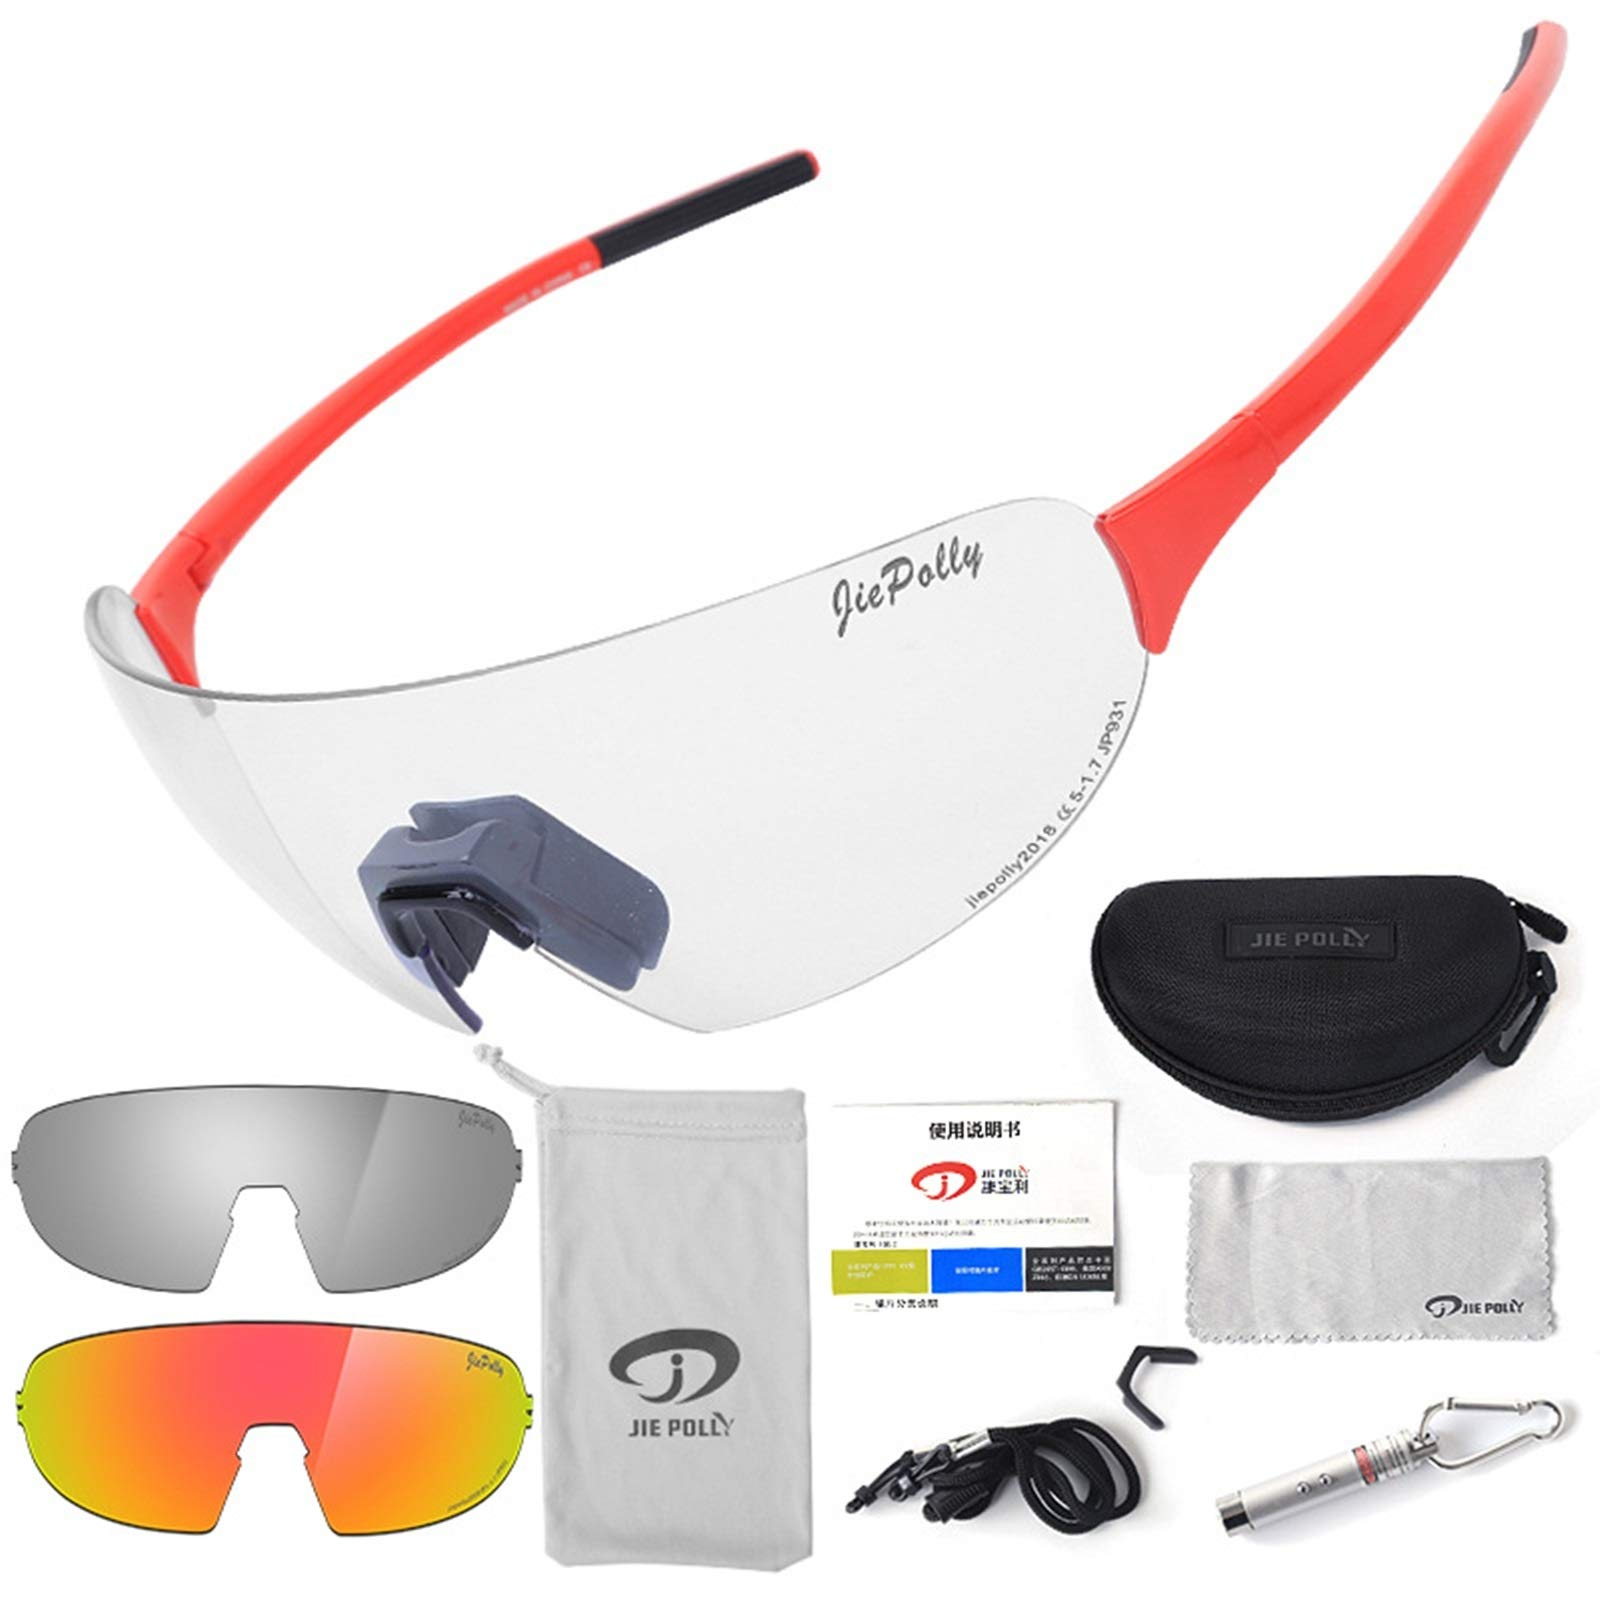 Adisaer Cycling Glasses Wind Outdoor Sports Riding Color-Changing Glasses Men and Women Running Fishing Bicycle Windproof Polarized Glasses Red Luxury for Adults